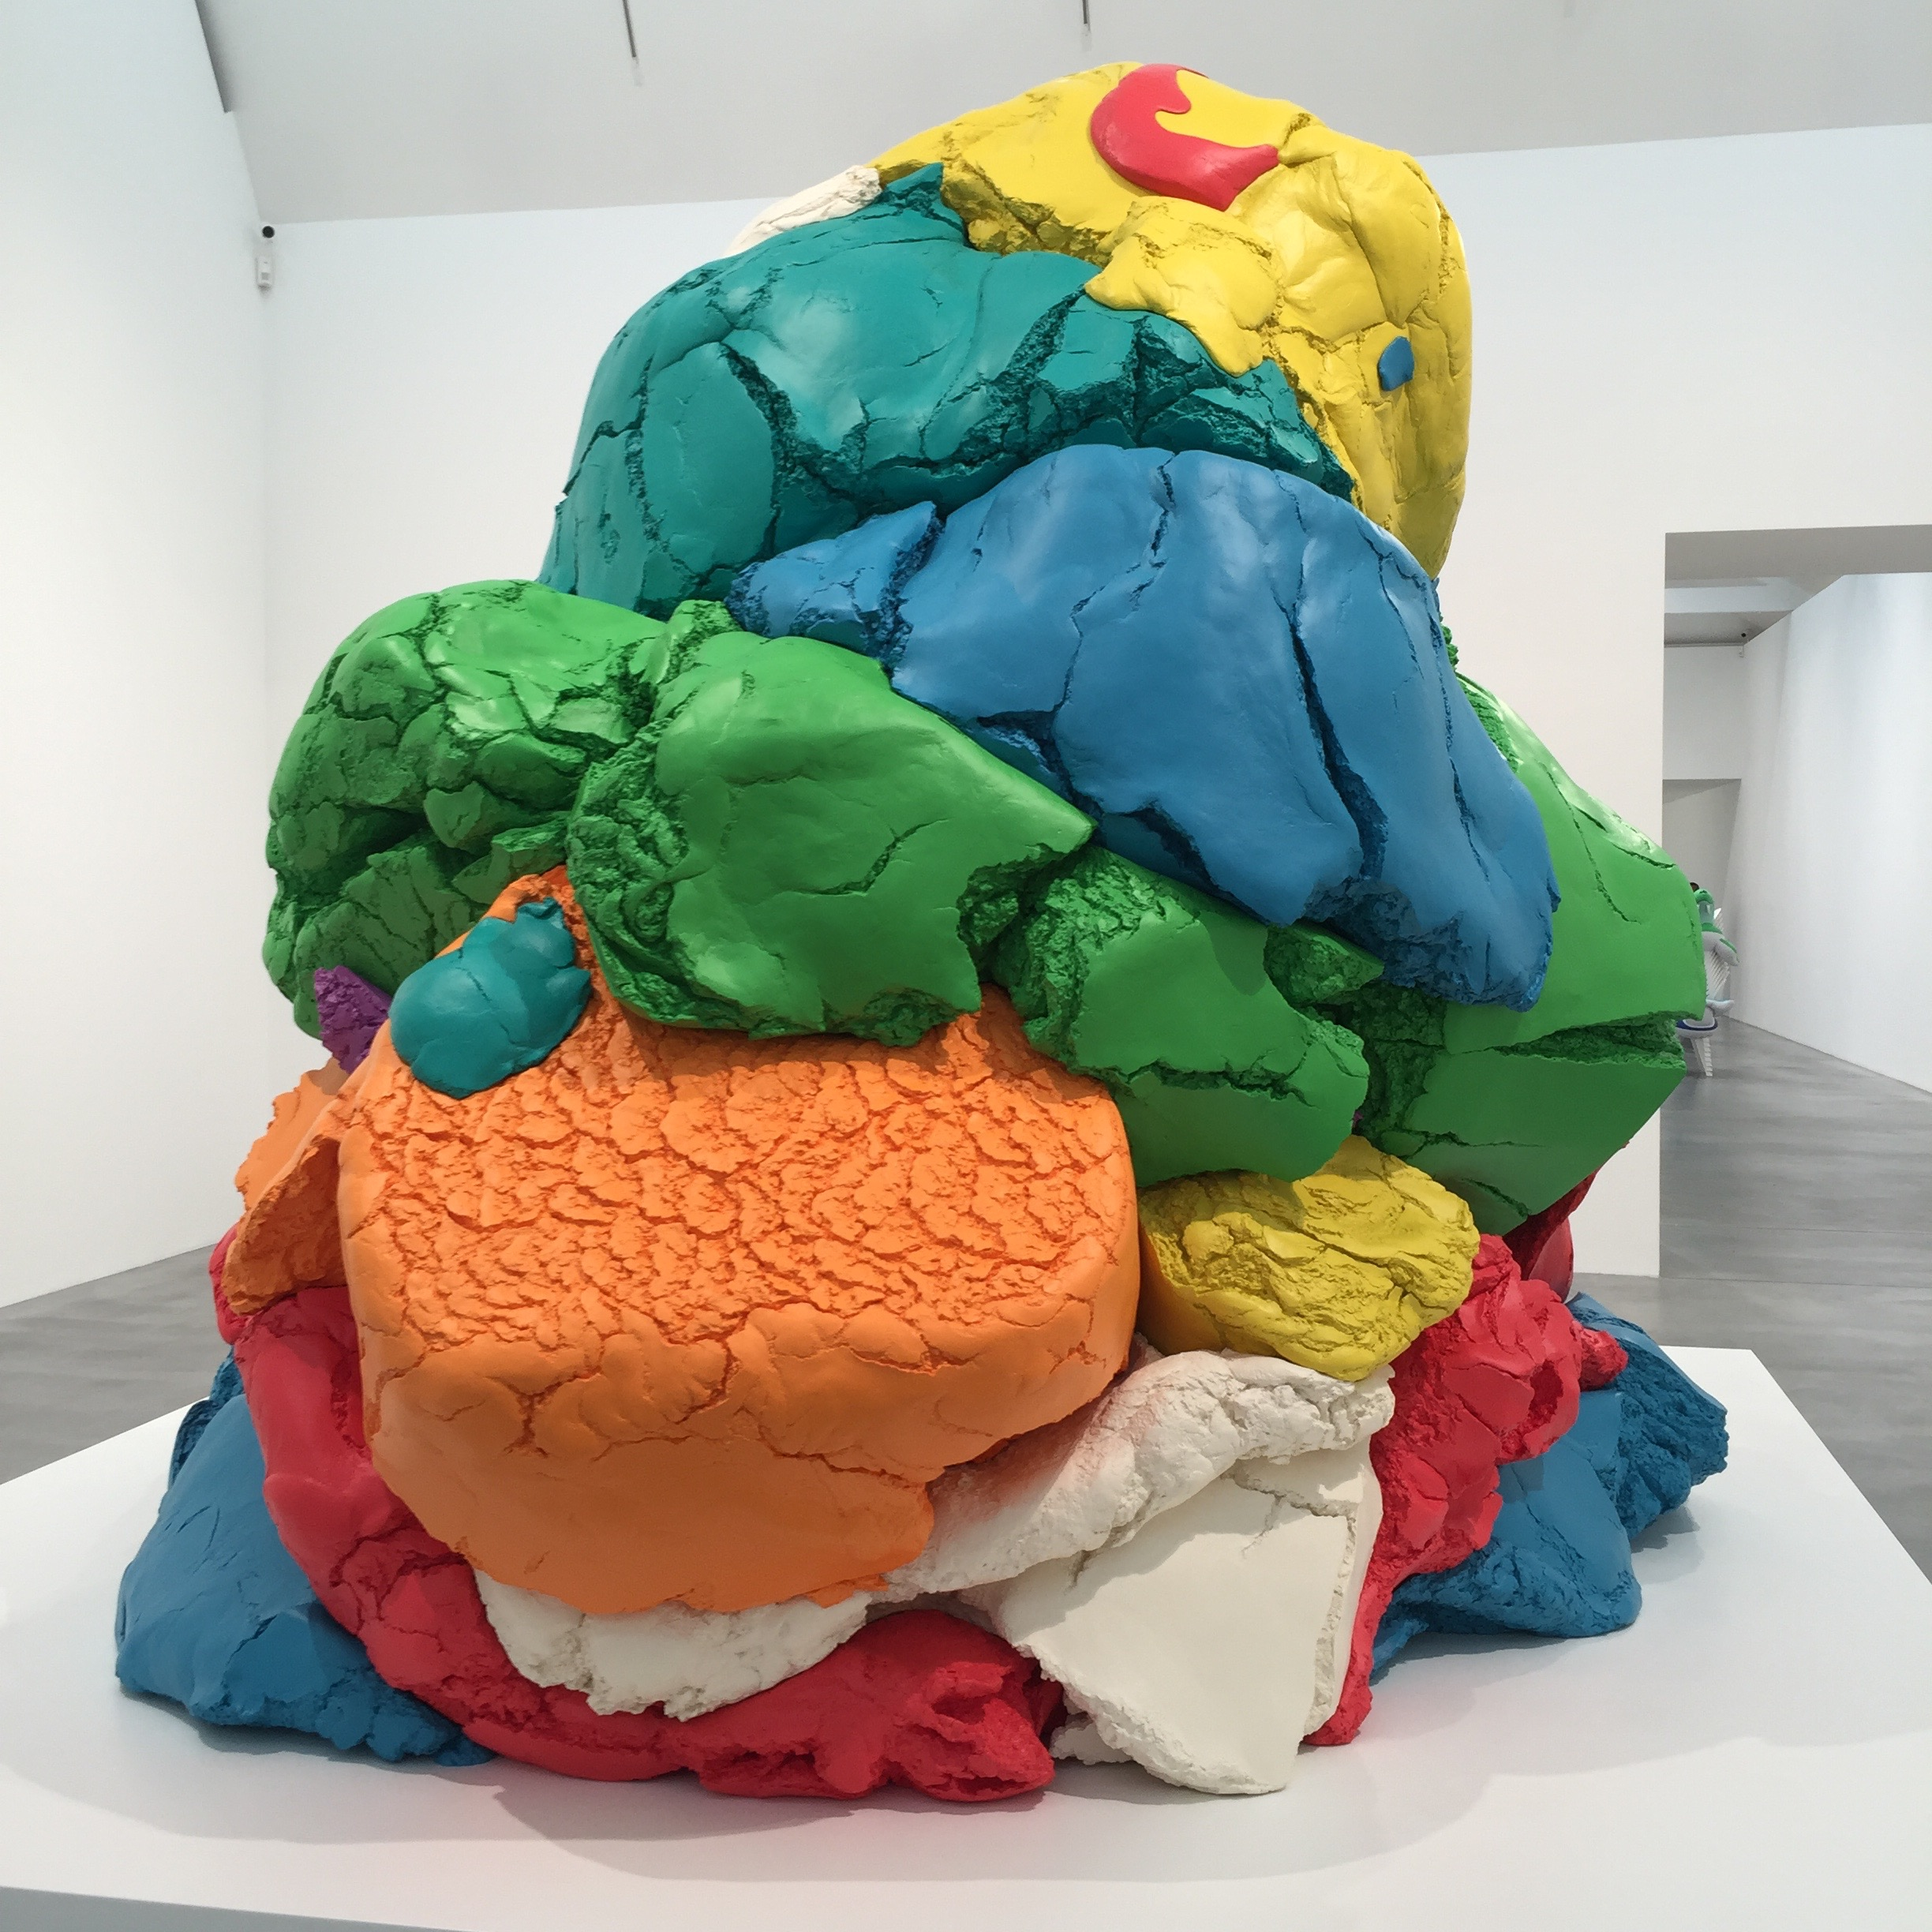 Jeff Koons | The Groucho Club | Art Brunch | Art Review | Newport Street Gallery